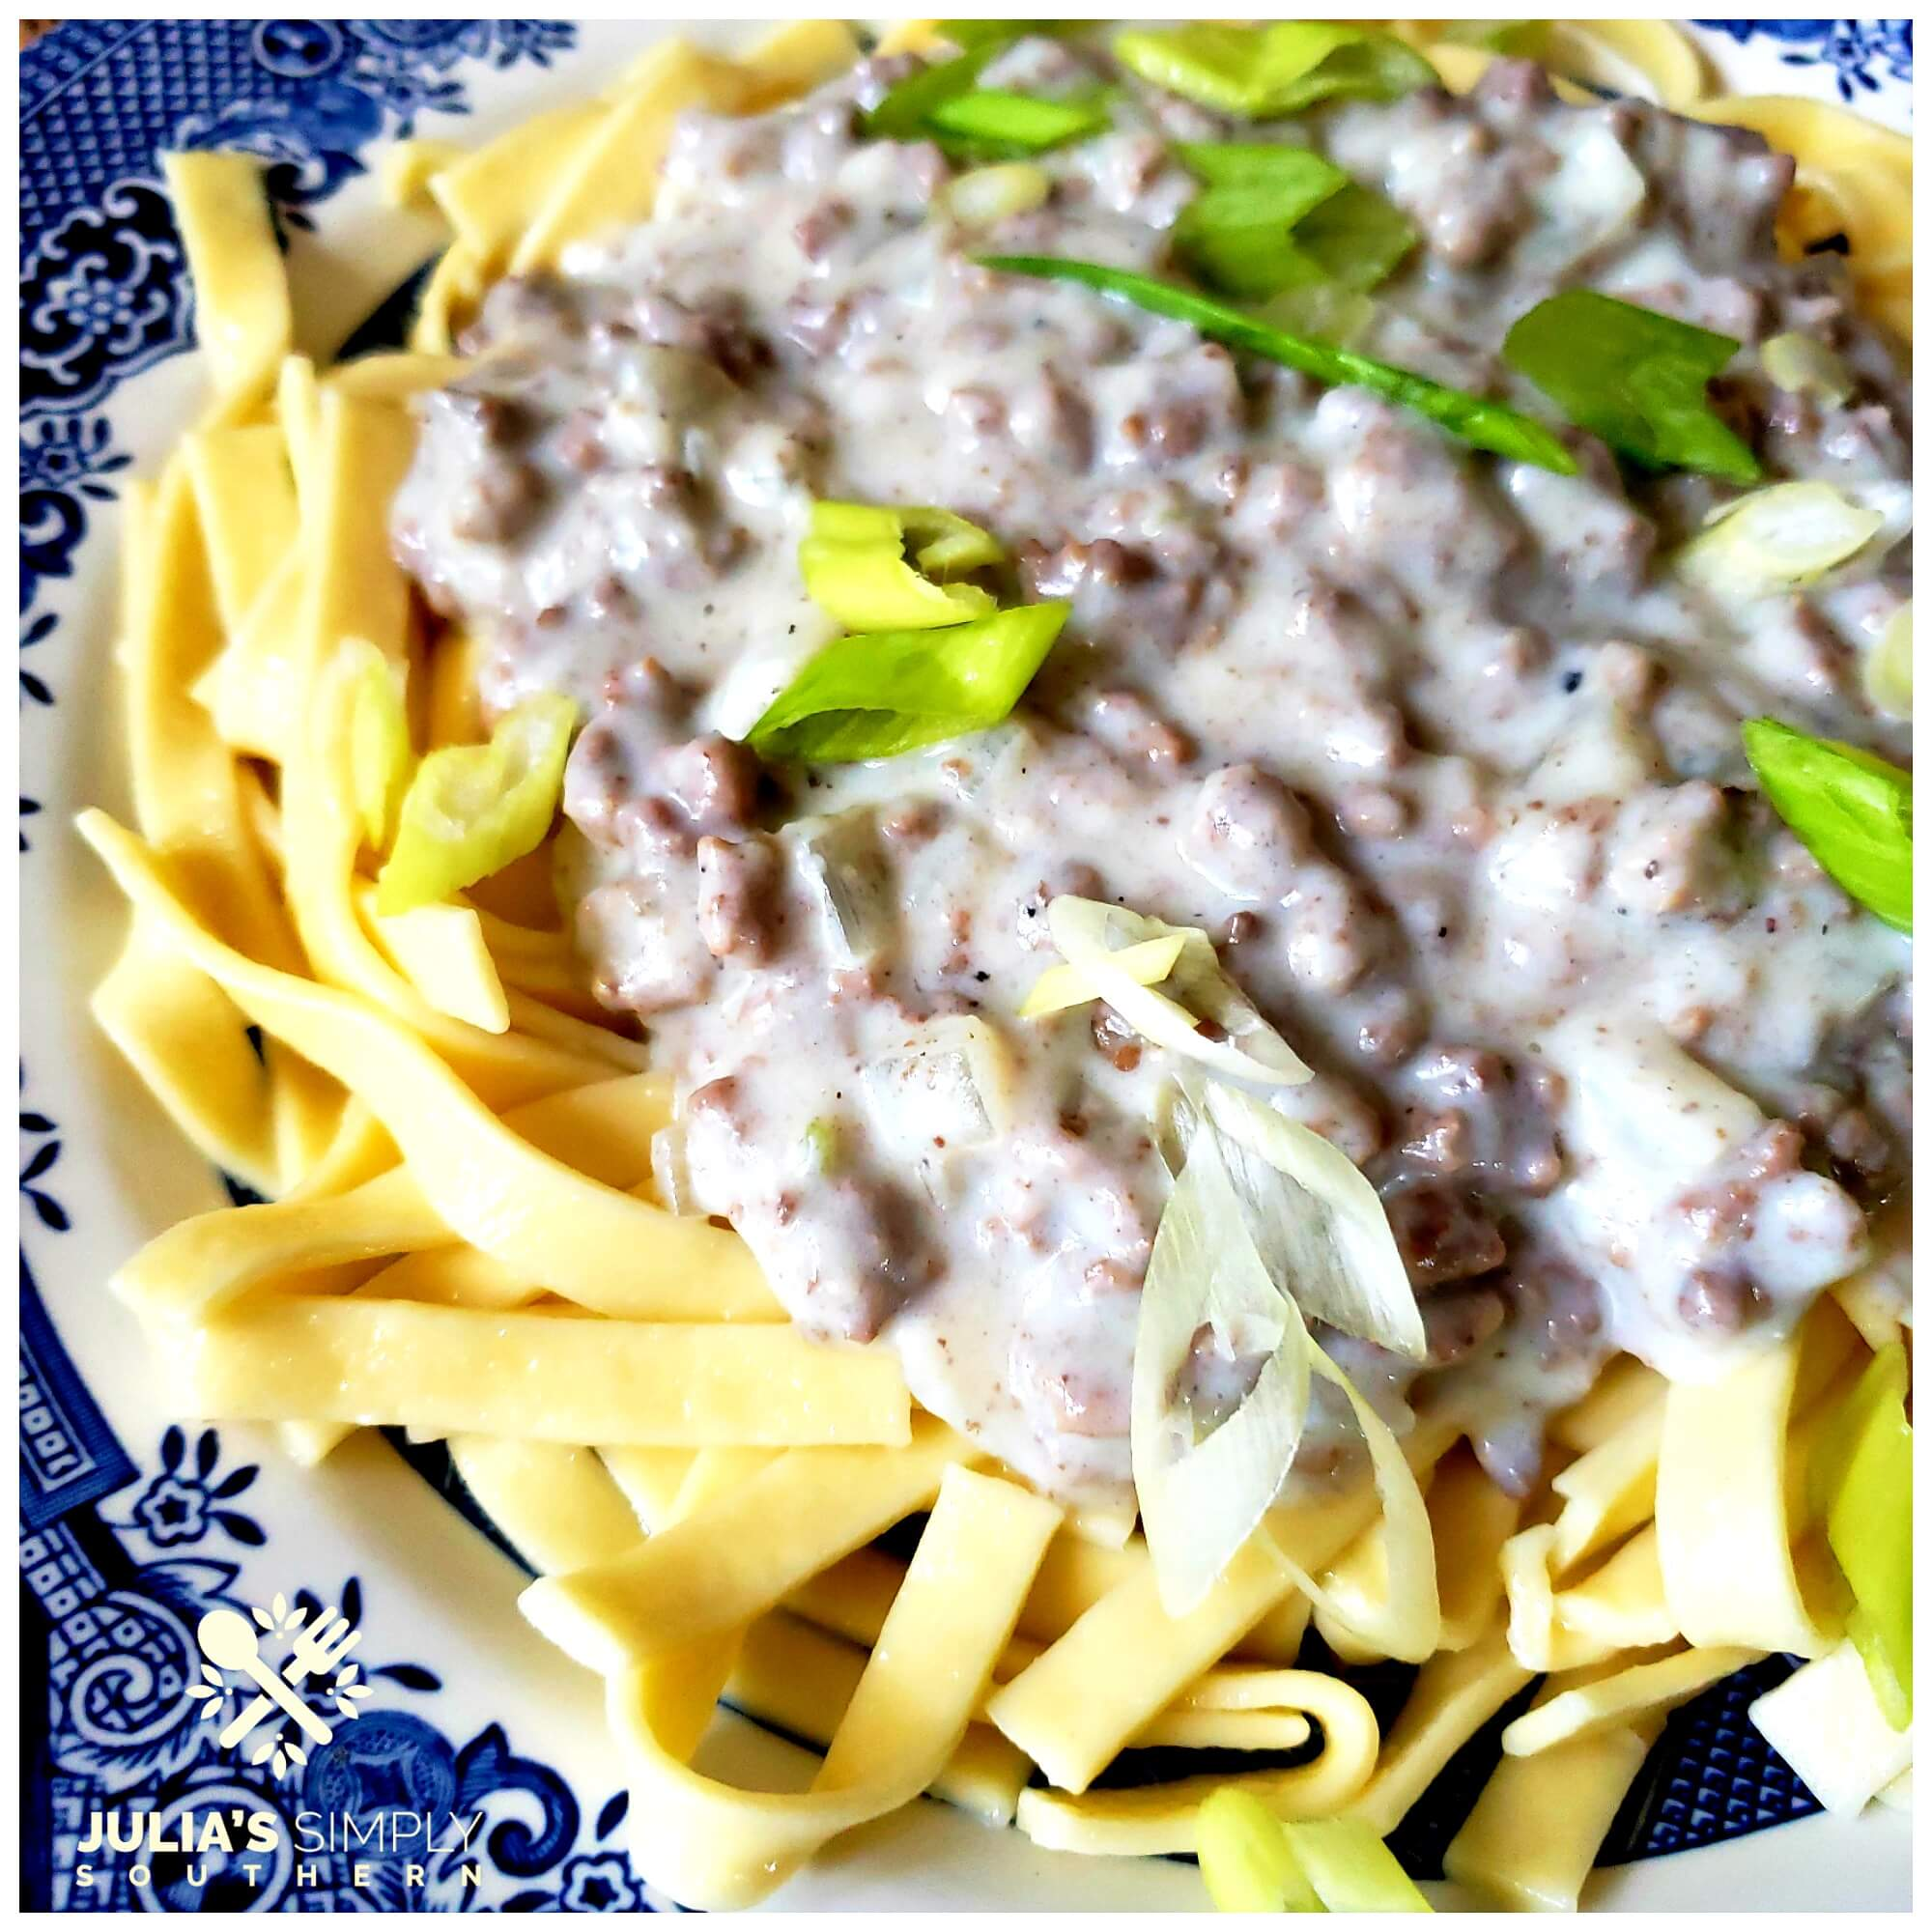 Photo of old fashioned buttered noodles topped with hamburger beef gravy and garnished with scallions on a blue and white plate